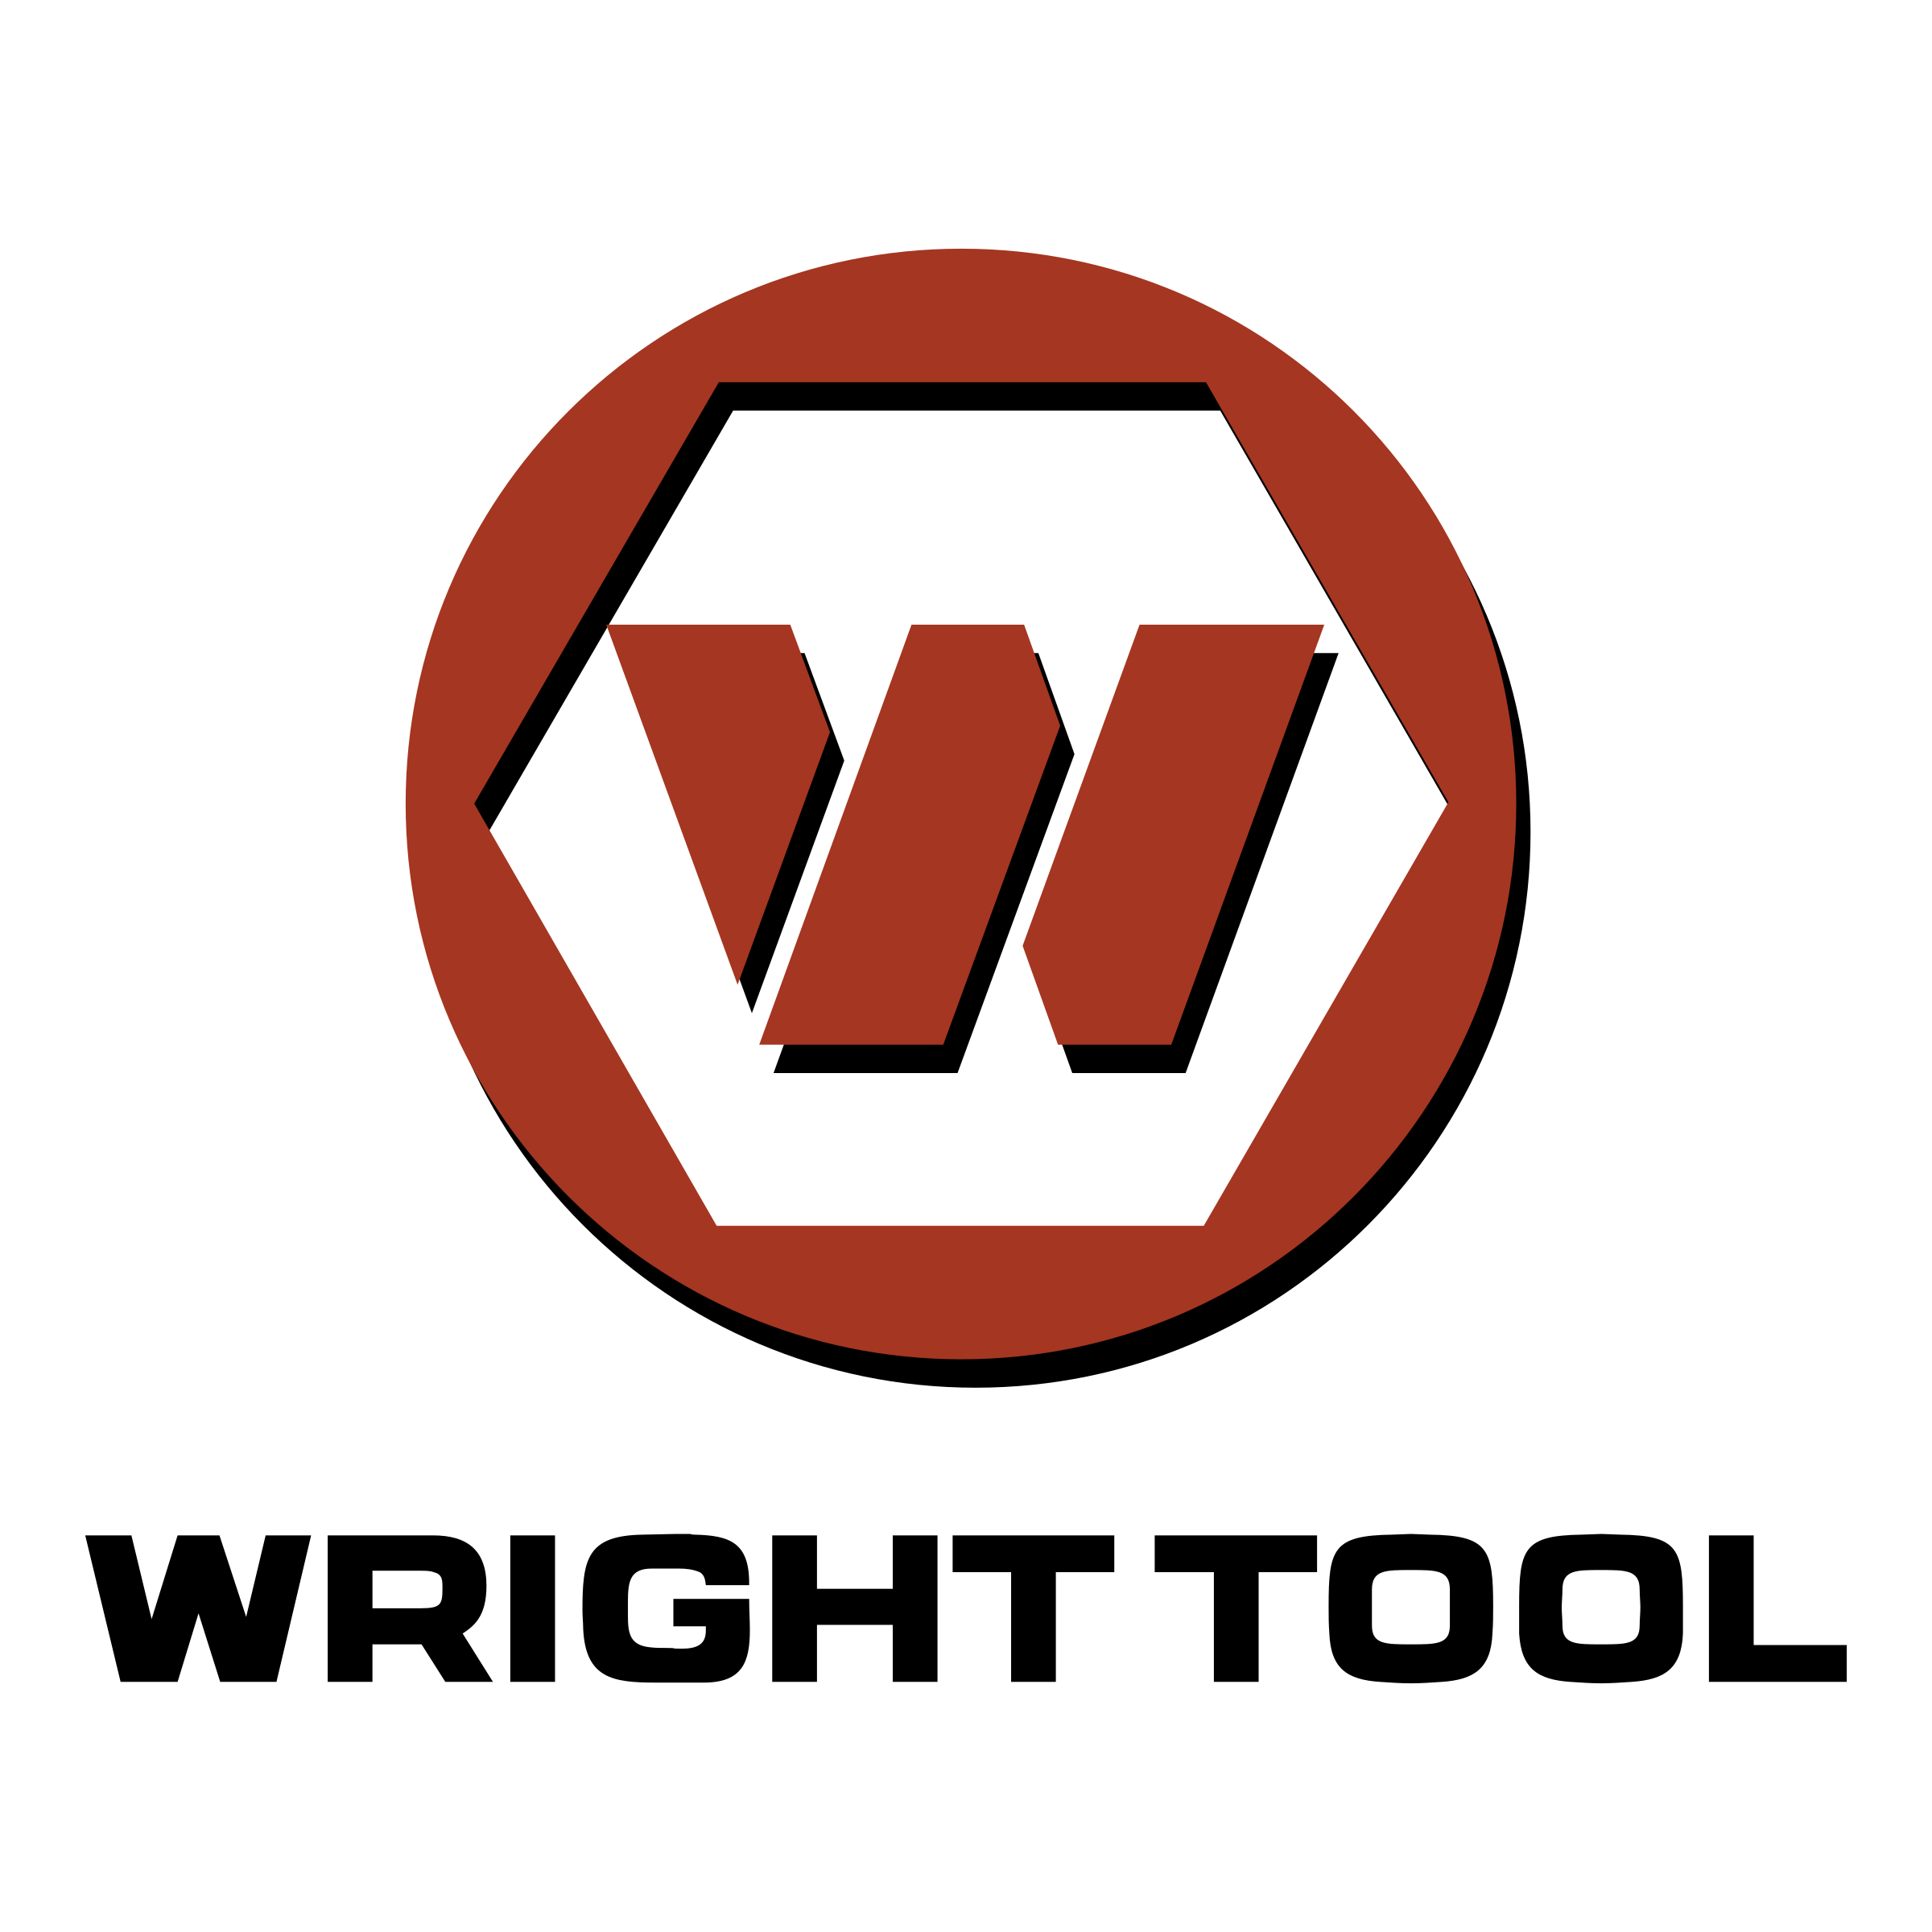 Wright Tool Logo PNG Transparent & SVG Vector - Freebie Supply